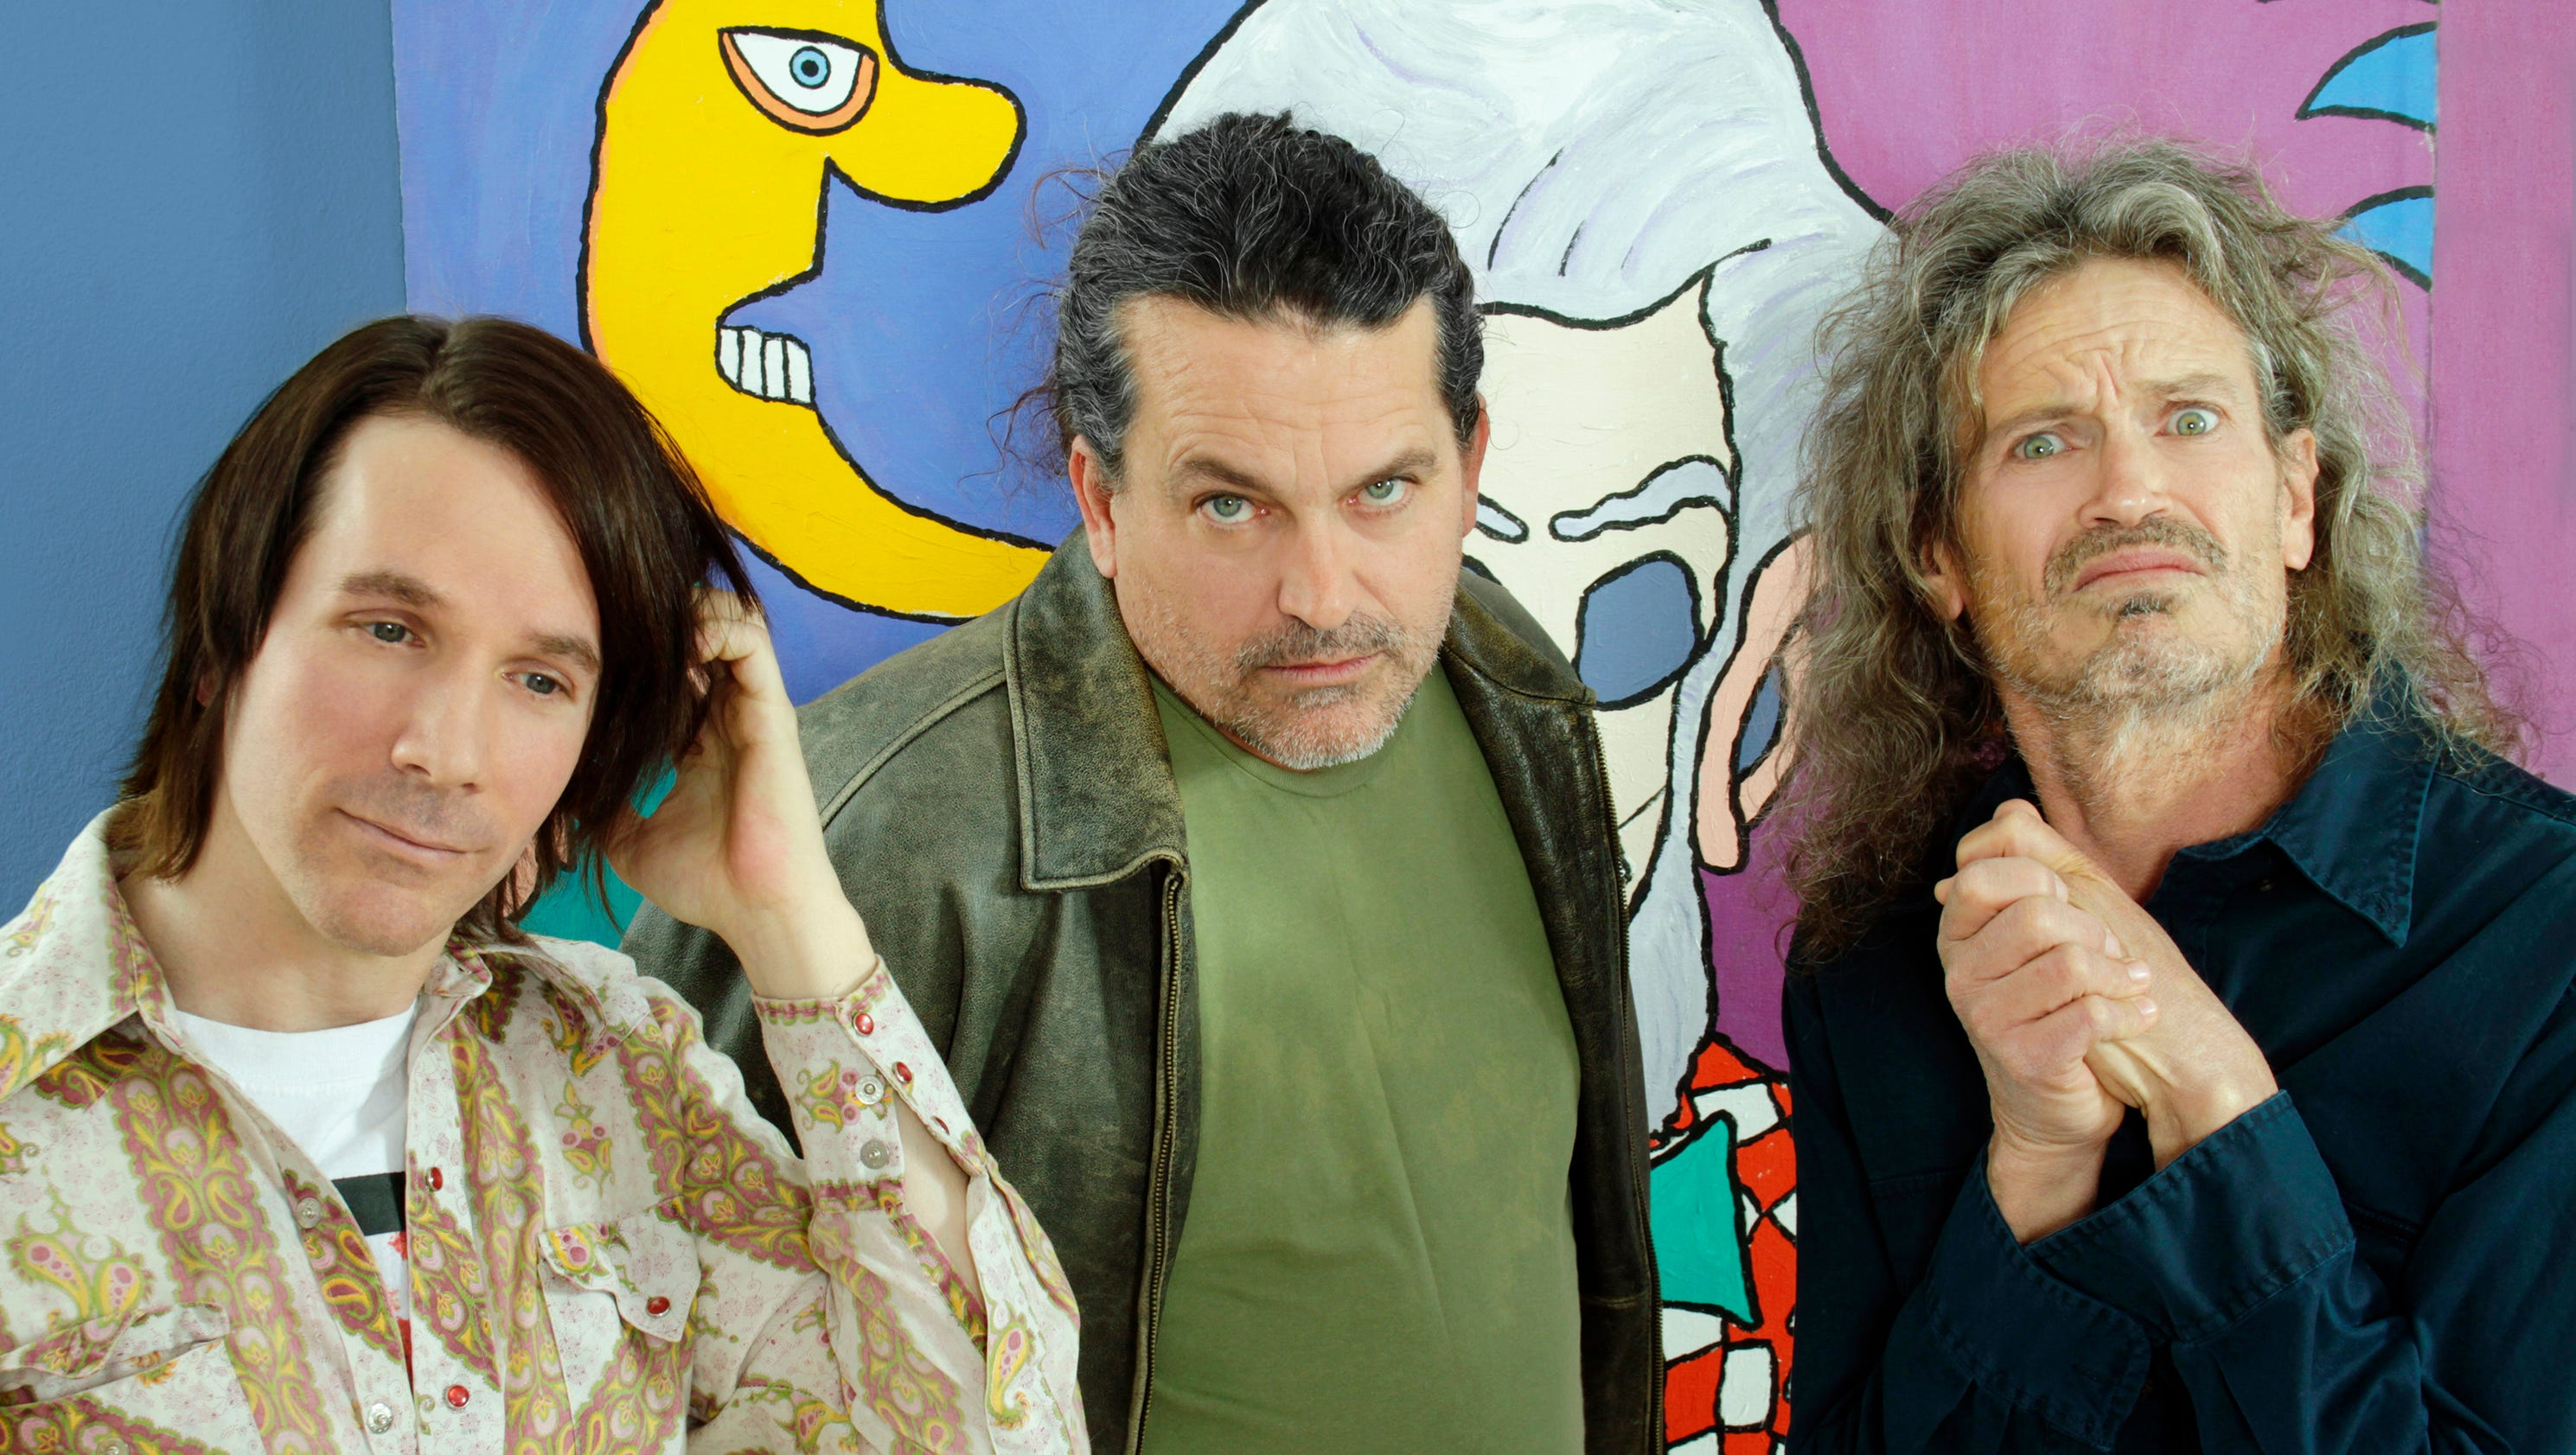 Dad Rock Cris Kirkwood On Life In Meat Puppets